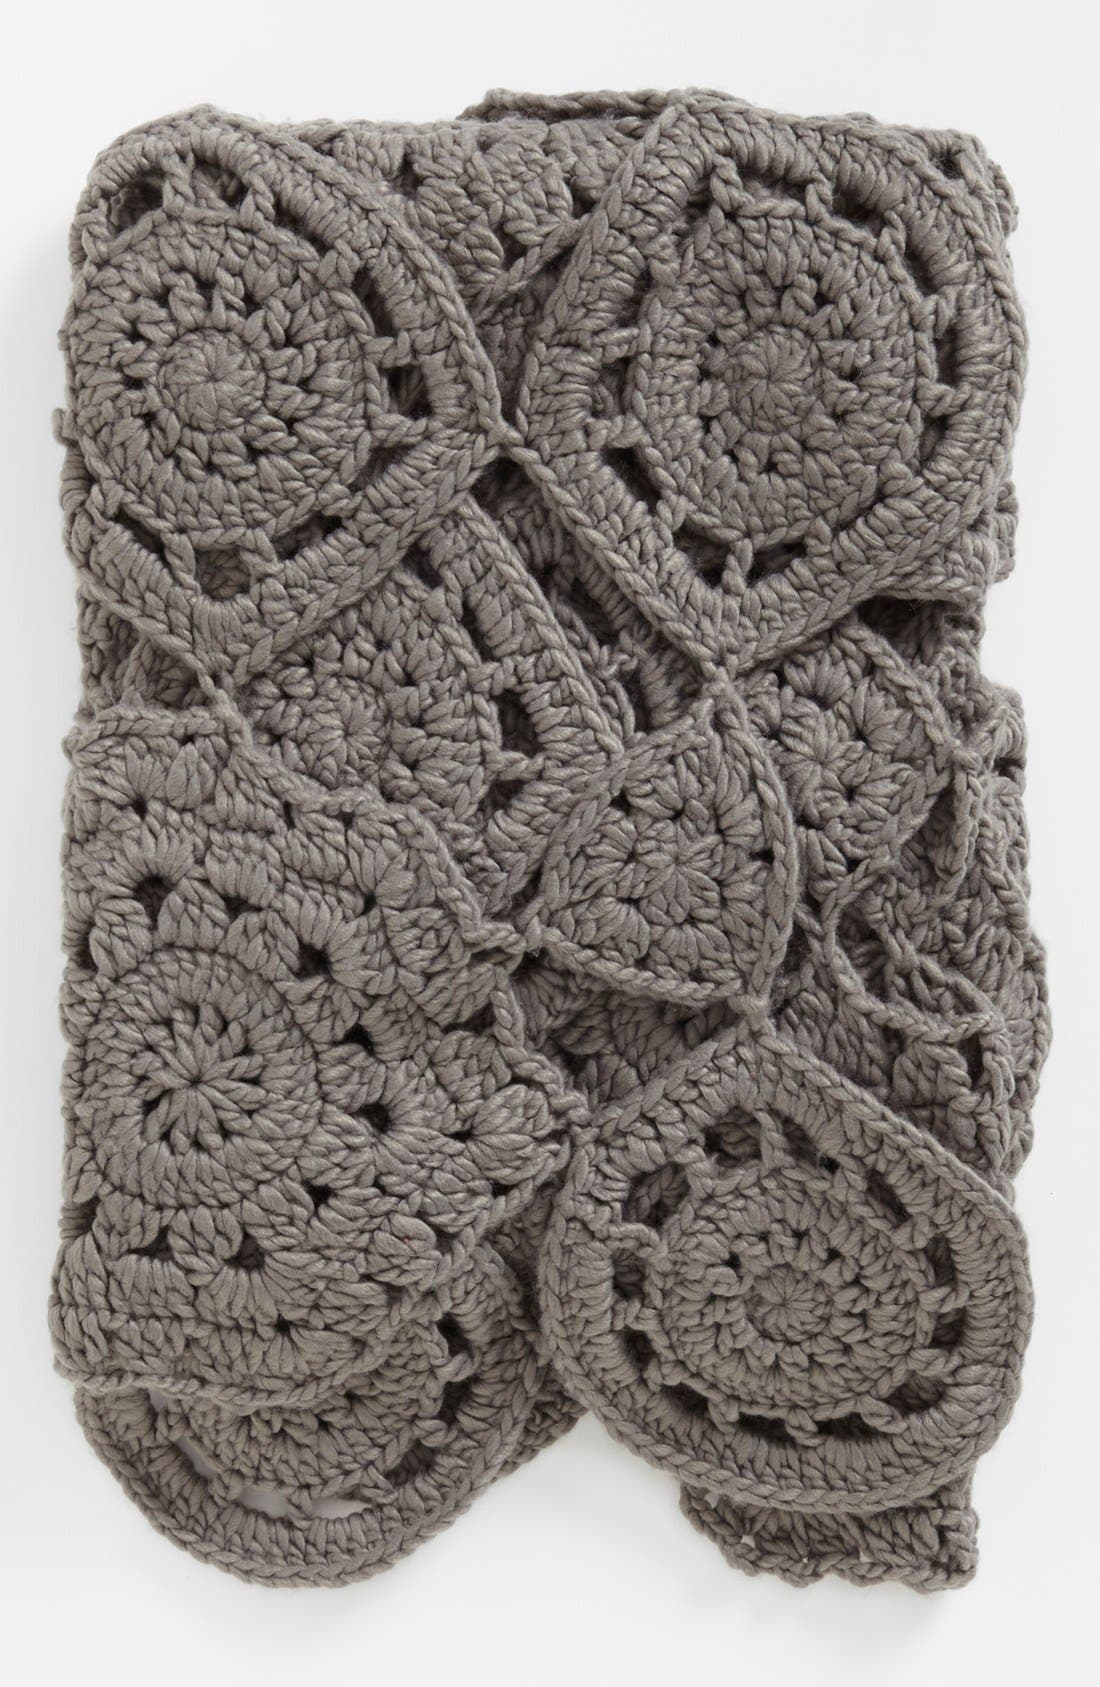 Main Image - Nordstrom at Home 'Astor' Hand Crocheted Throw